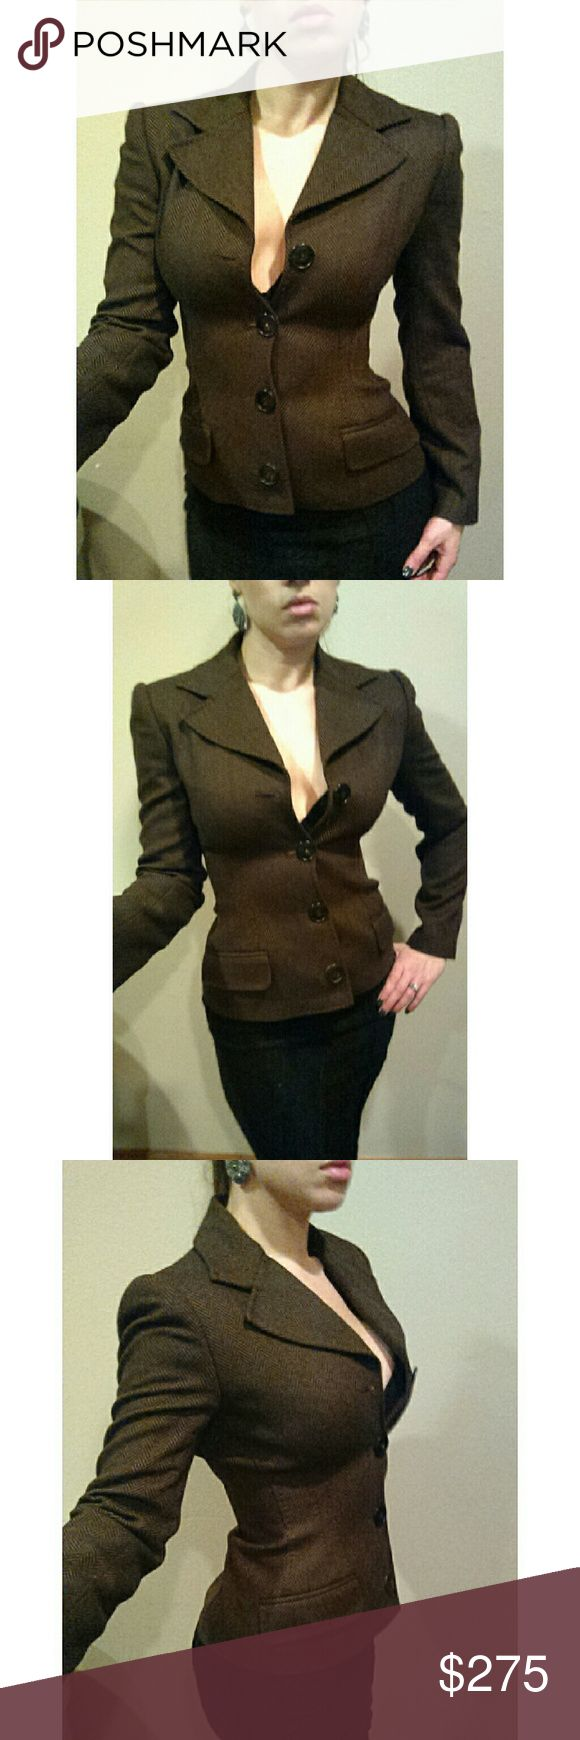 DOLCE GABBANA Brown Herringbone Fitted Blazer Stunning Dolce and Gabana blazer. Crafted in a luxurious brown wool herringbone pattern. Buttons up. Fully lined. Perfect with a pencil skirt or slacks for work. Chic and sophisticated.  Excellent condition.  Size 42. US 6. Runs a little small. Dolce & Gabbana Jackets & Coats Blazers